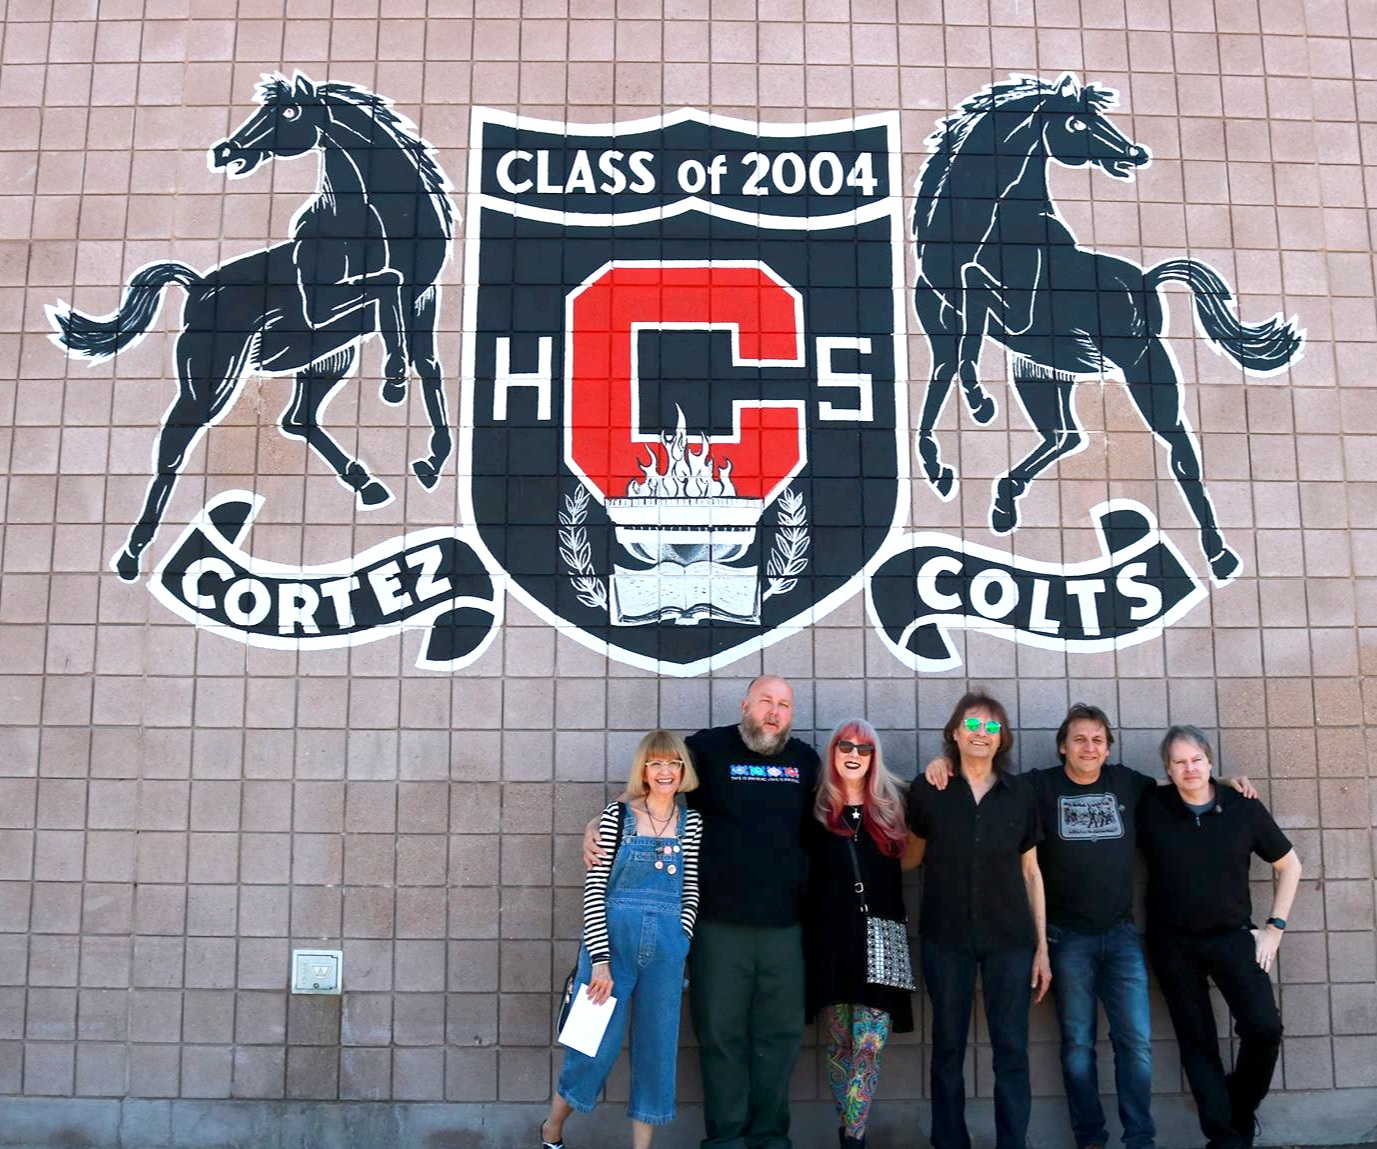 Jeanne Carney, Chris Penn, Cindy & Dennis Dunaway, Patrick Brezinski, and Steve Gaddis at Cortez High School, where Dennis and Alice met. Picture by Julia Arrgh.